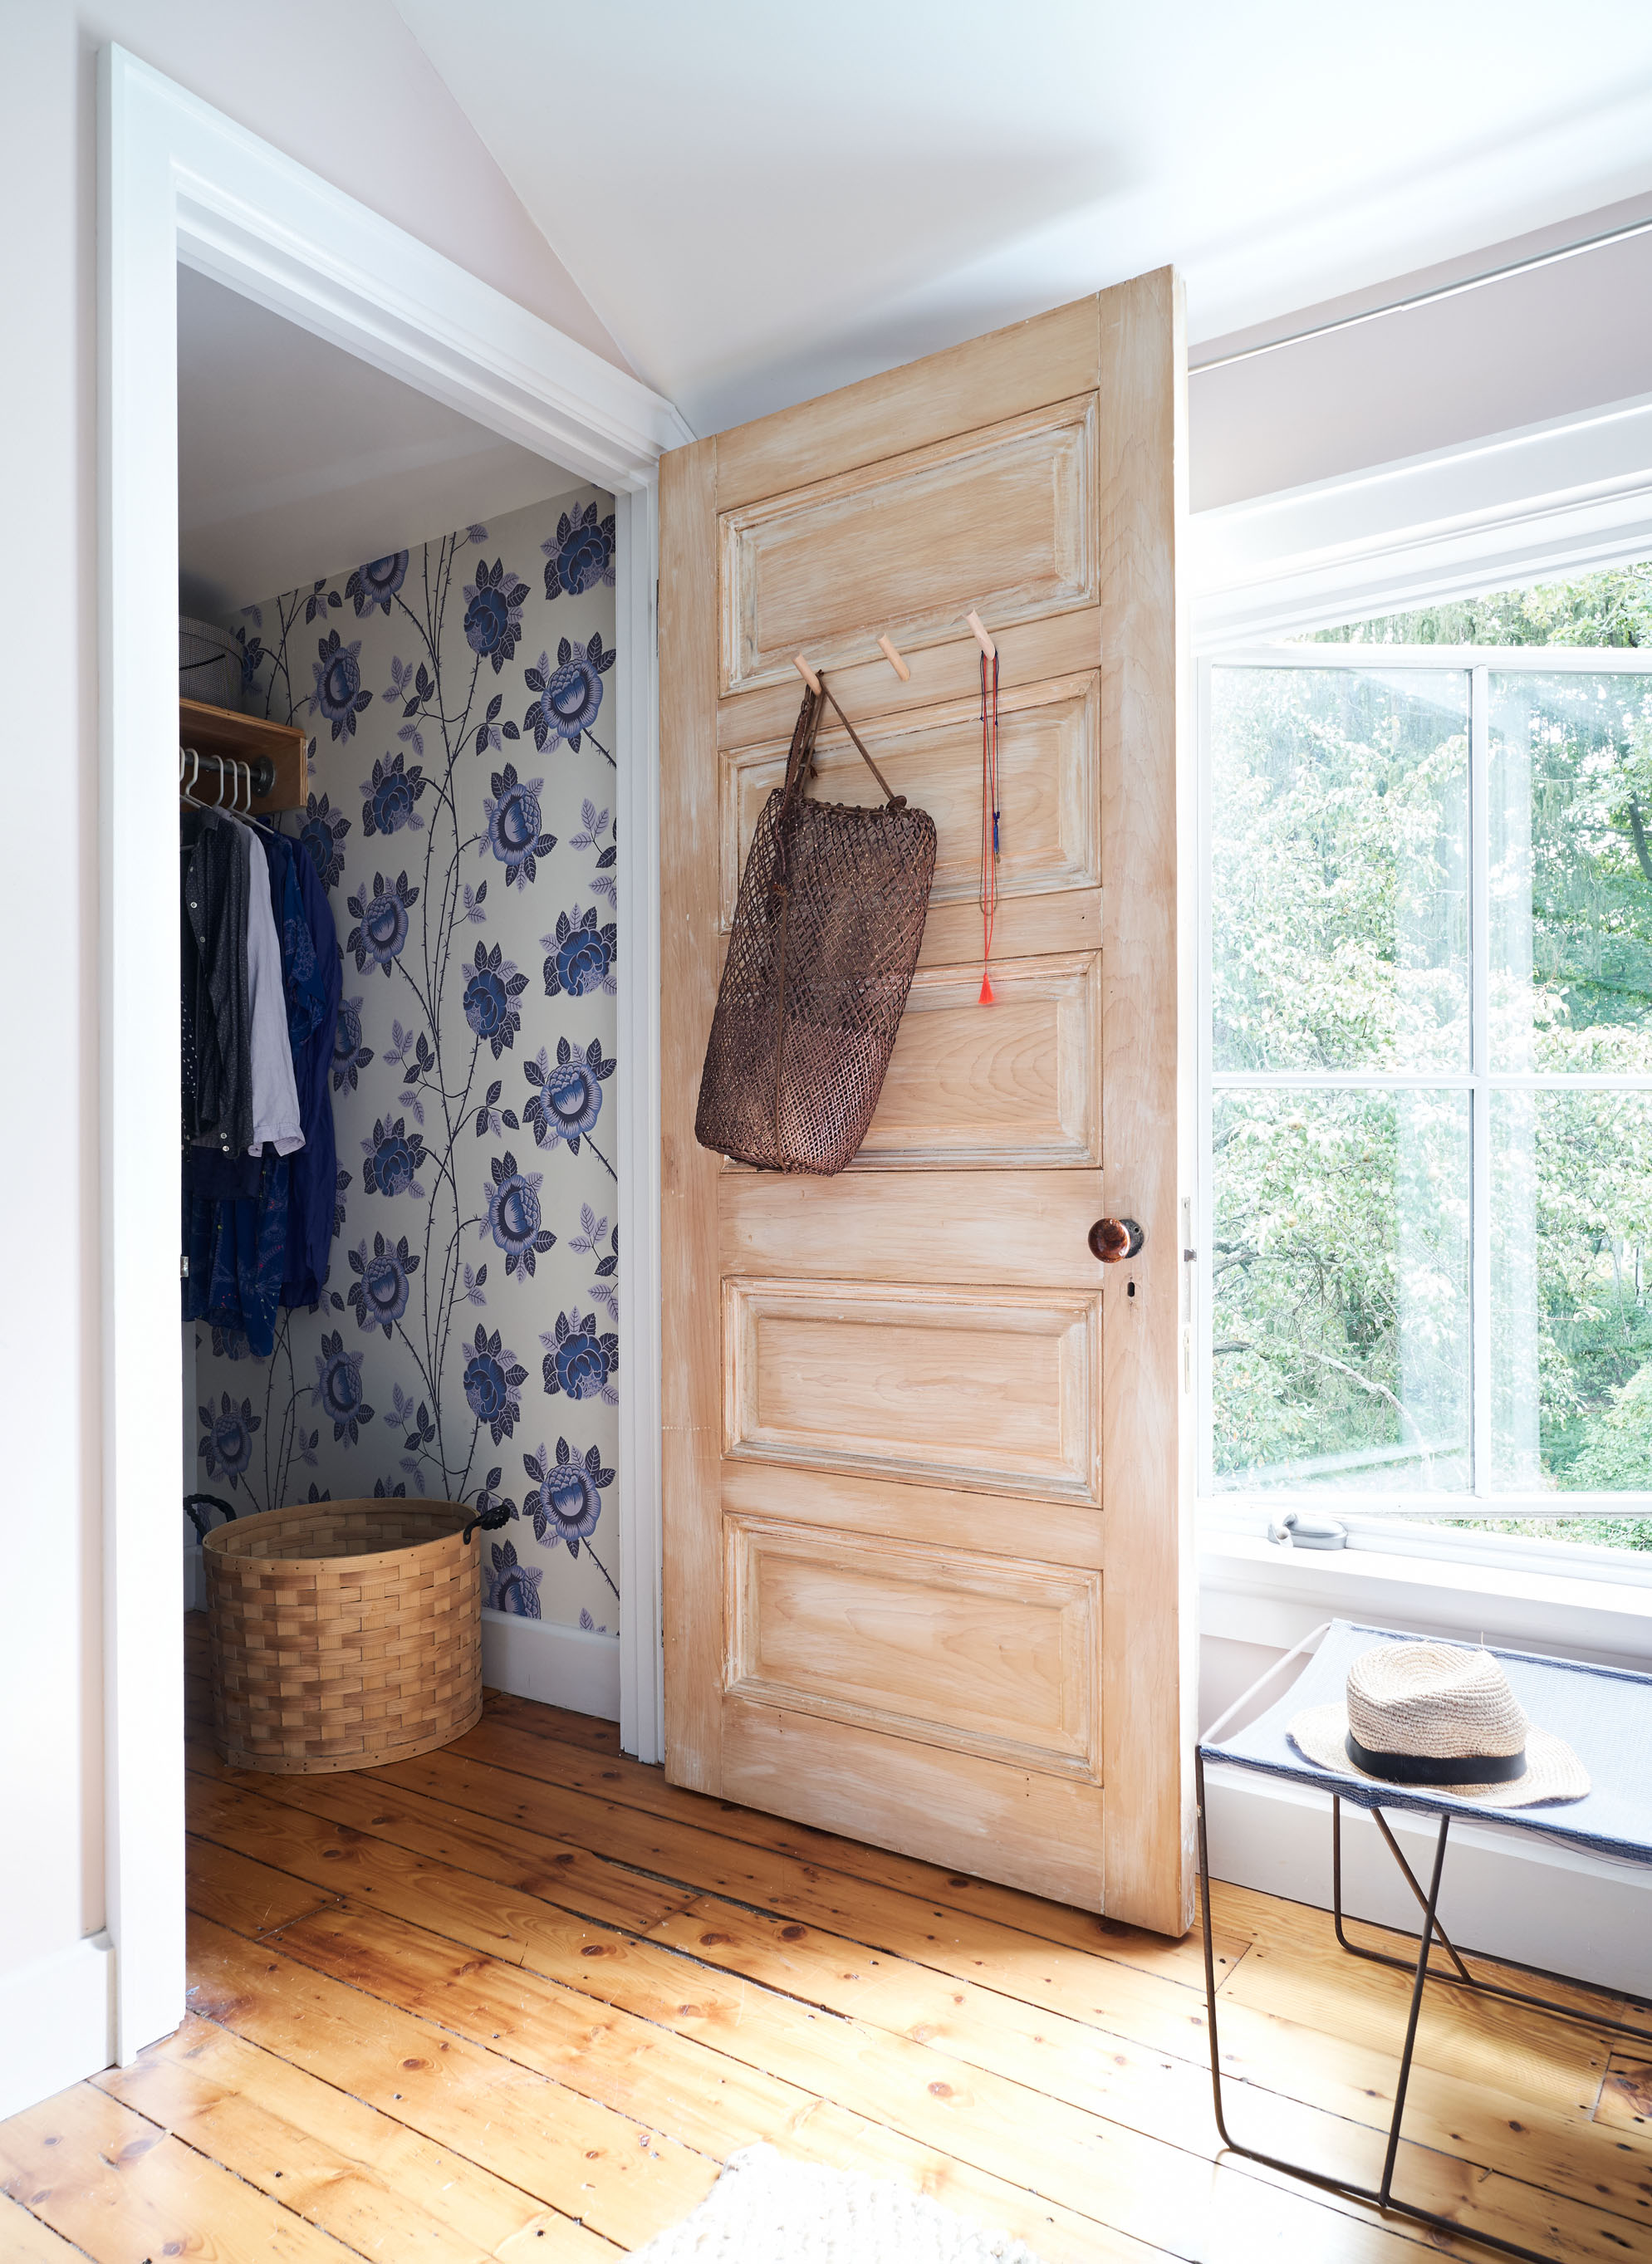 bedroom closet with refurbished door and blue floral wallpaper